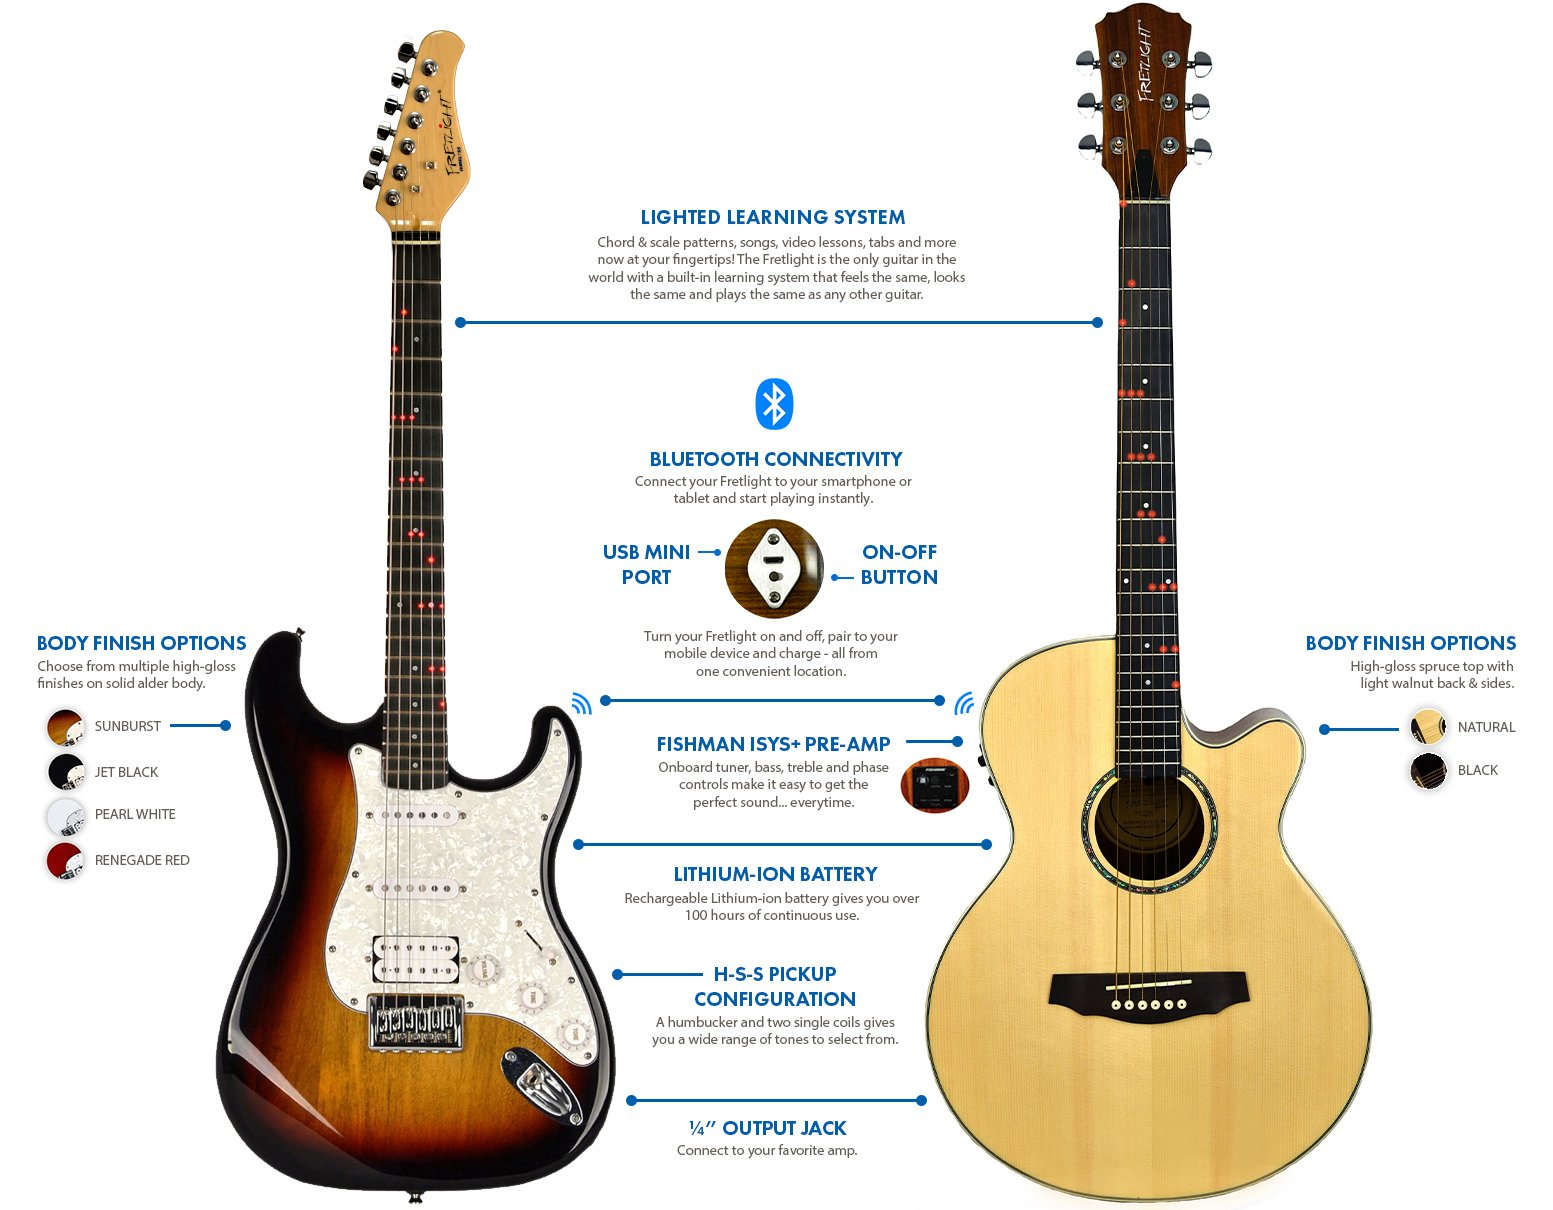 Wireless Guitar Features The Fretlight Store Output Jack Wiring